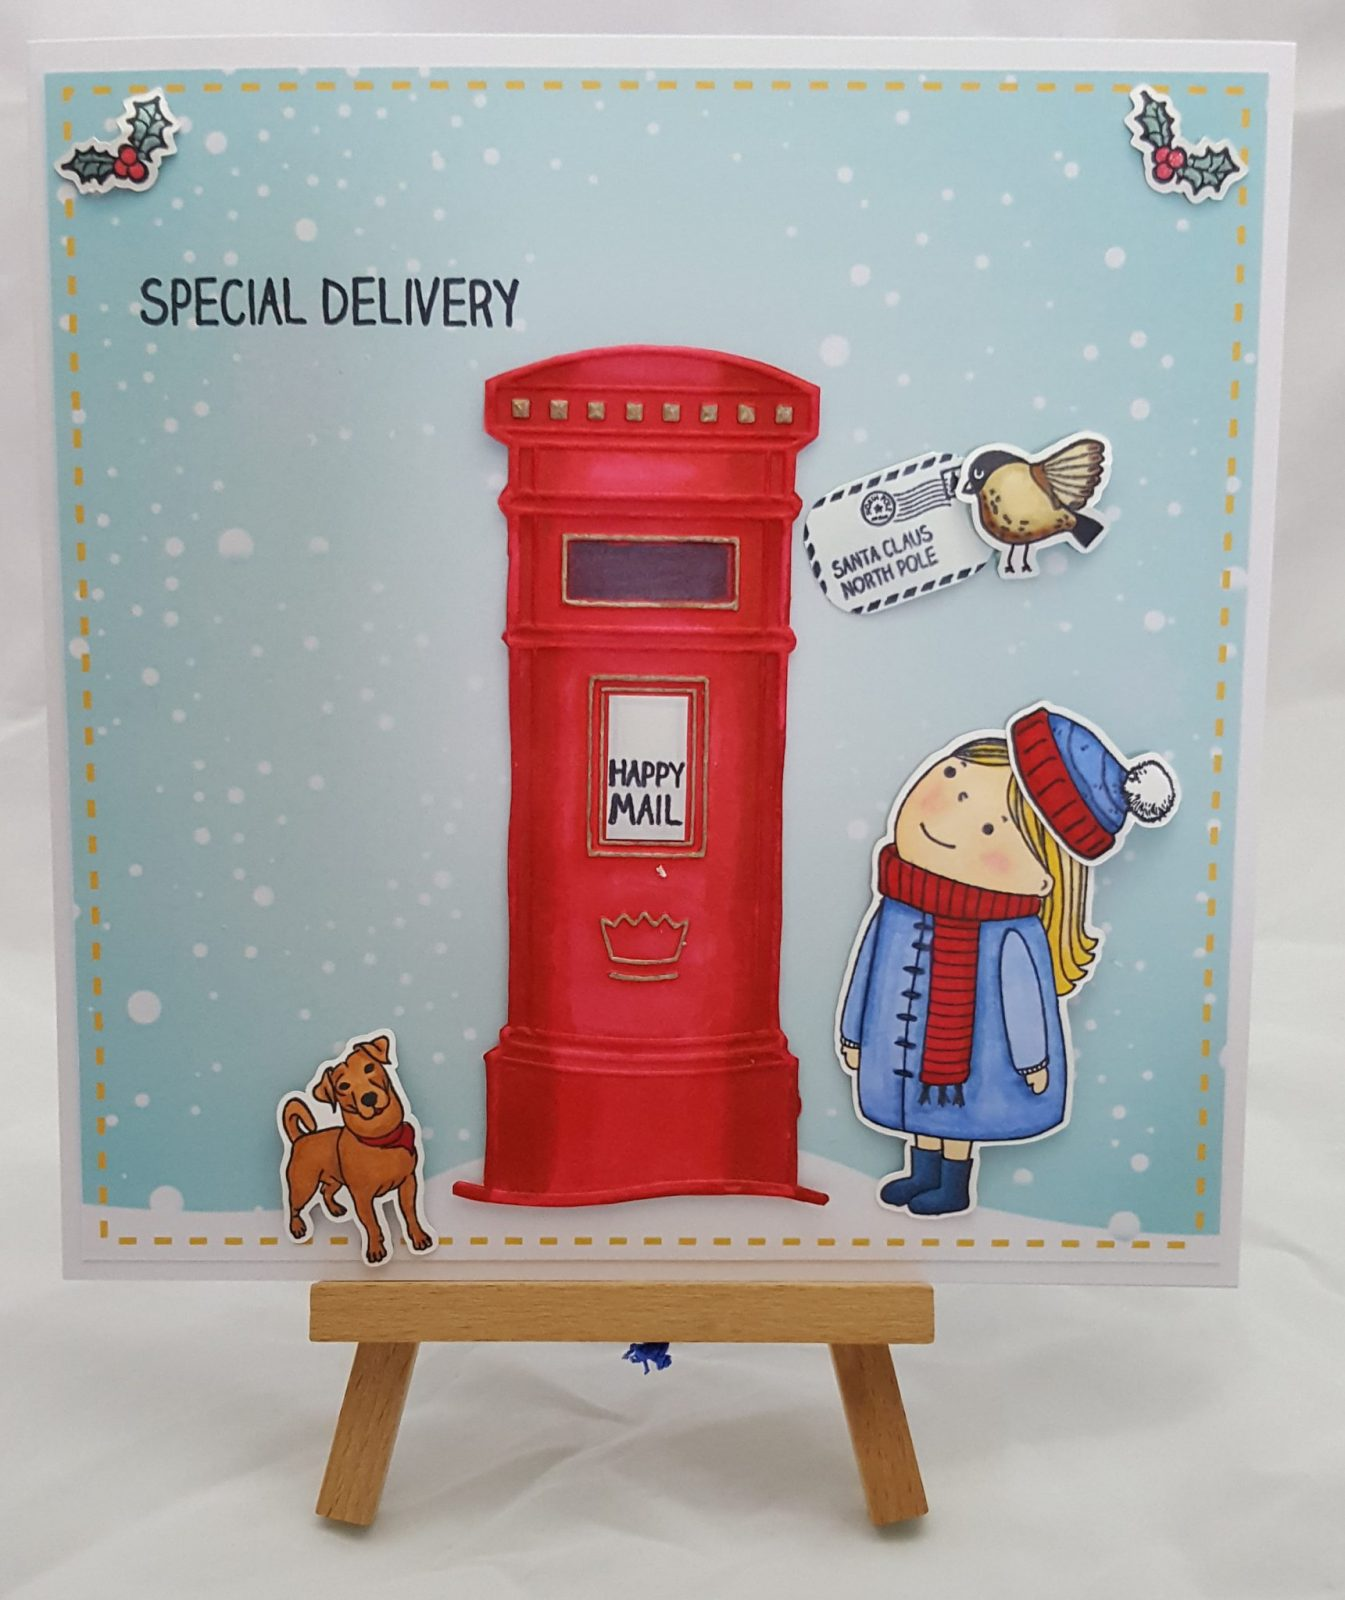 Sending Christmas Wishes Card